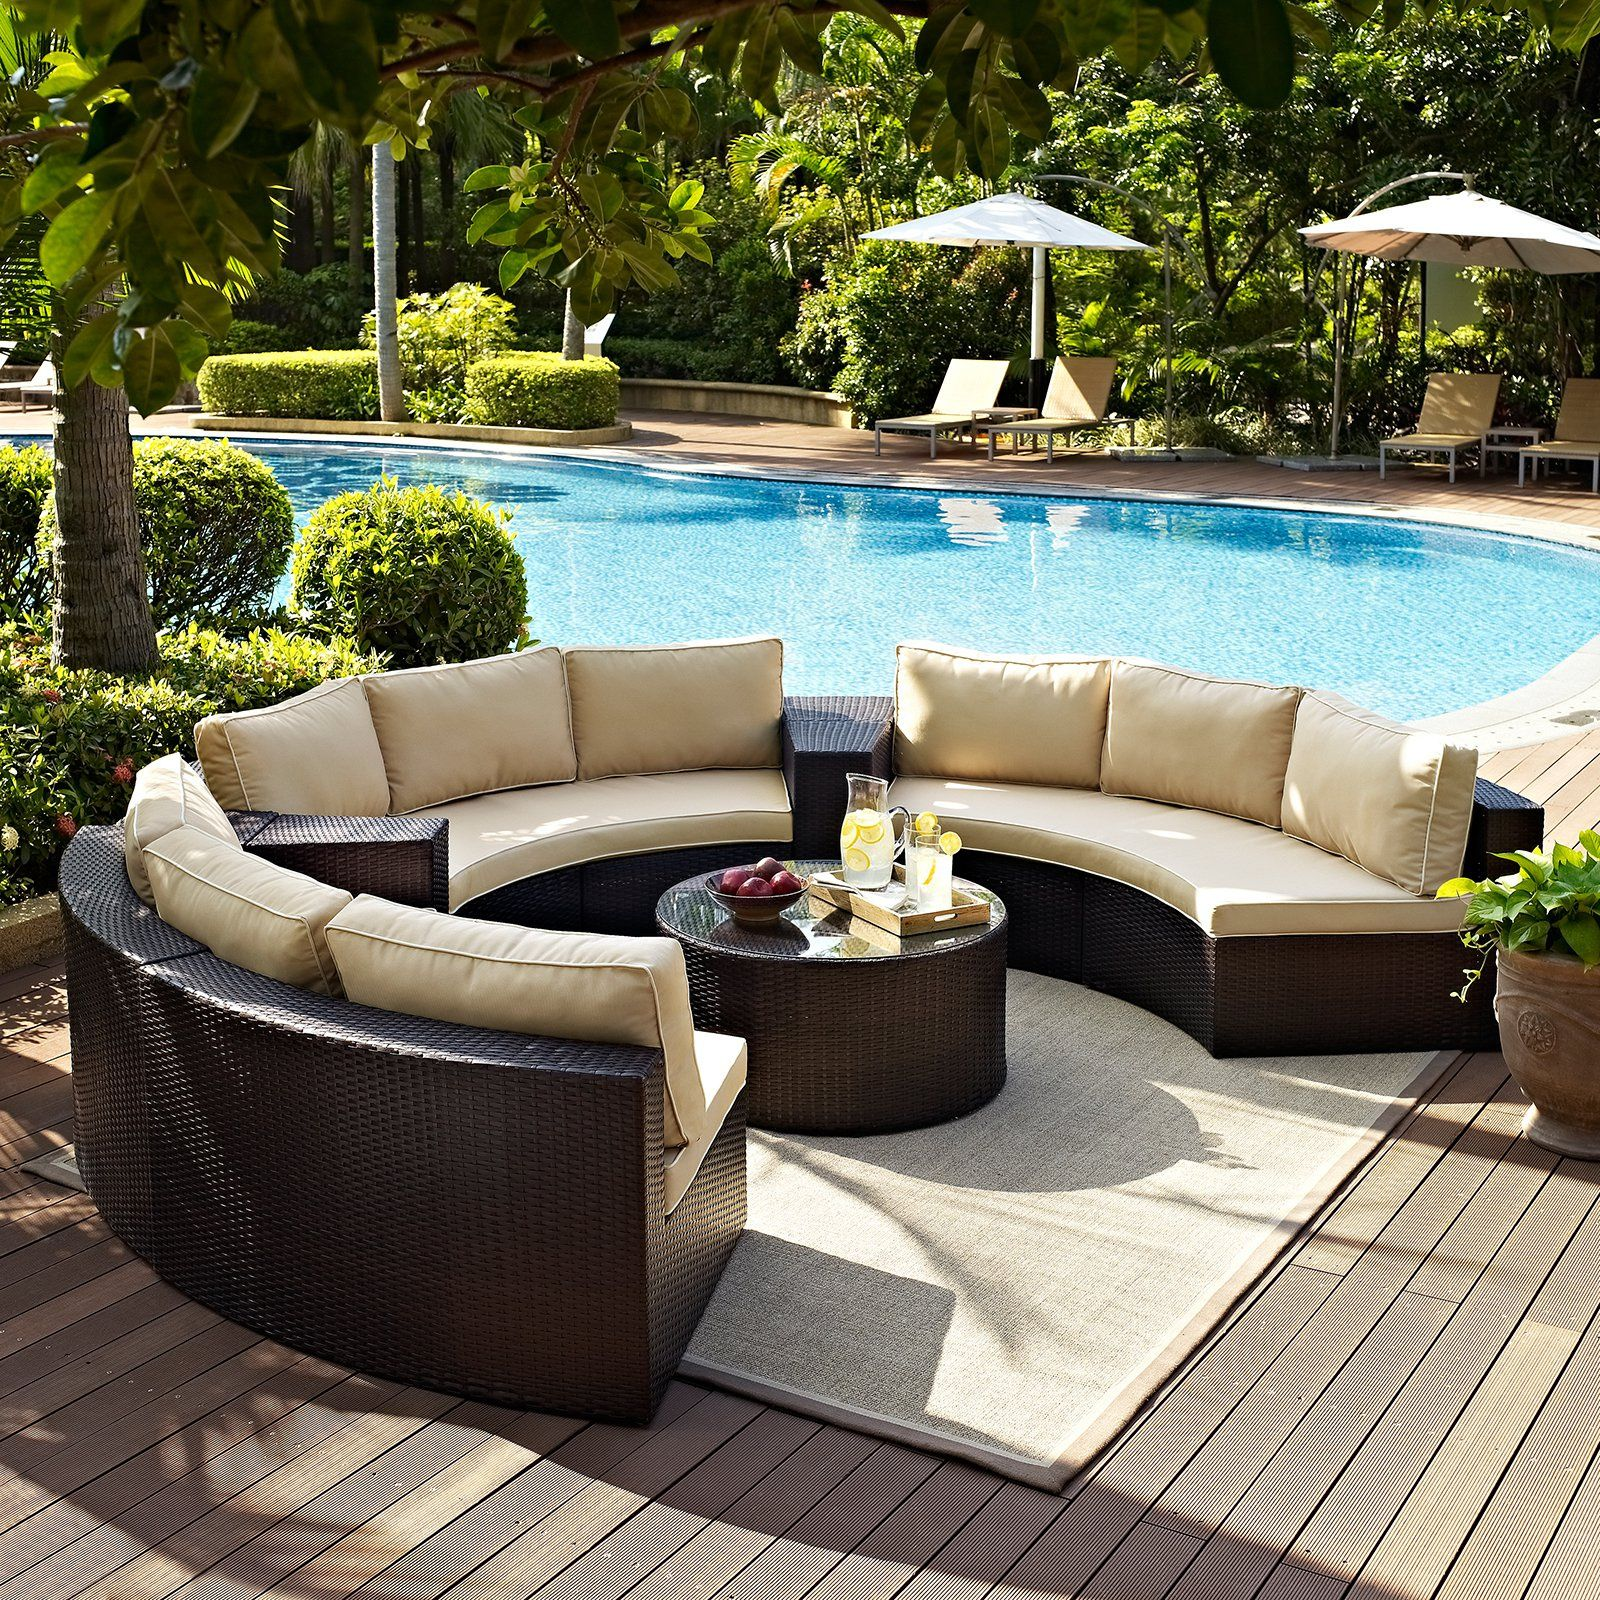 Exceptionnel Outdoor Furniture Bradenton Fl   Cool Rustic Furniture Check More At  Http://cacophonouscreations